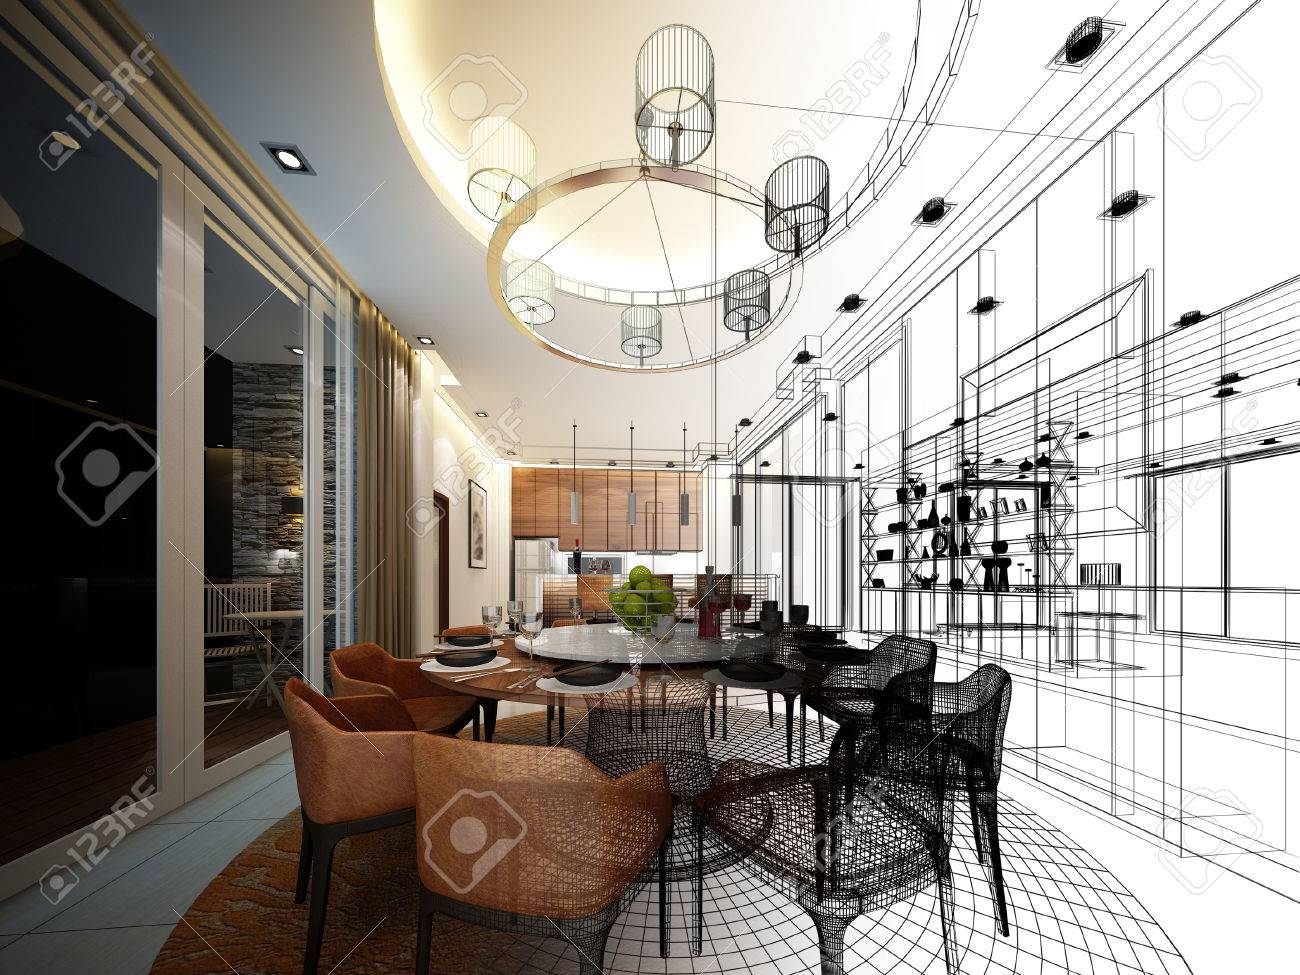 abstract sketch design of interior dining room - 48616205